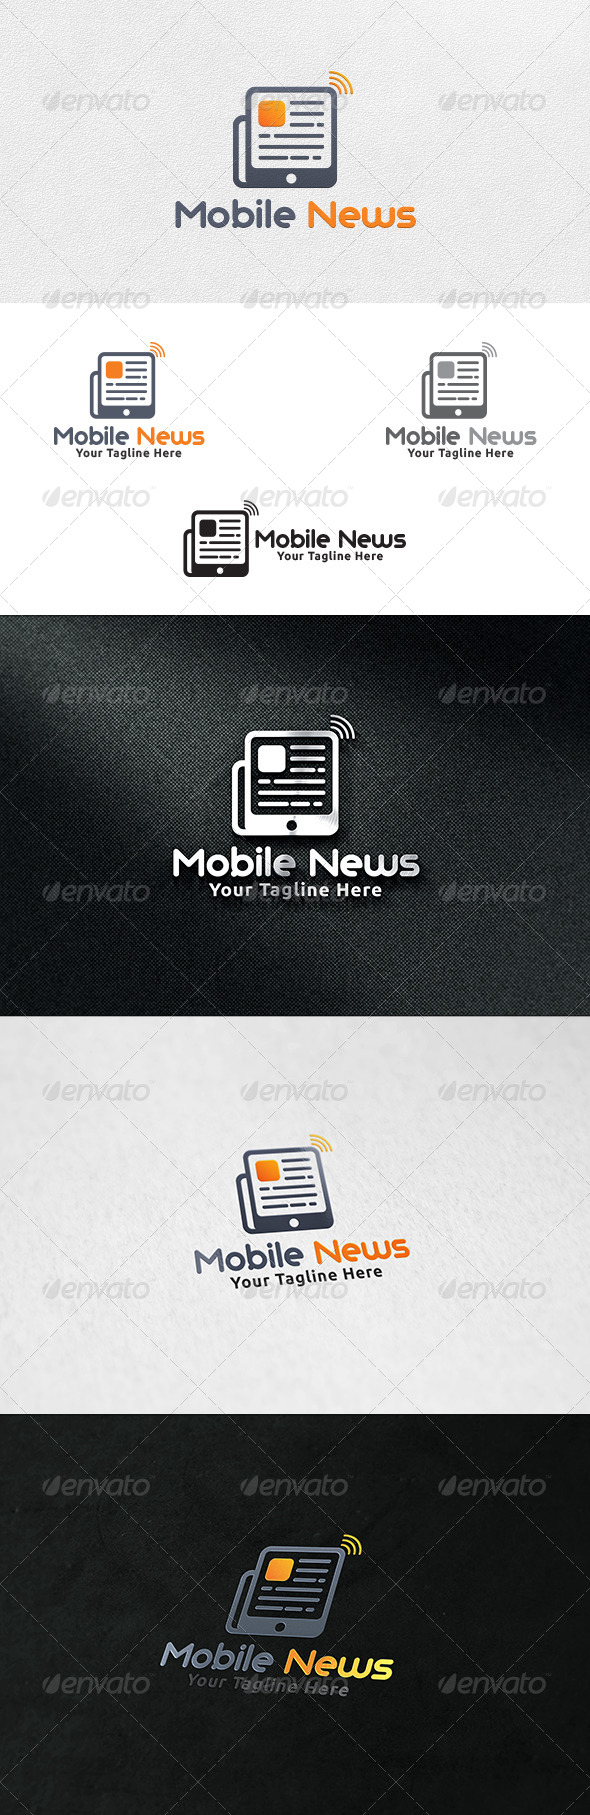 Mobile News V2 - Logo Template - Objects Logo Templates